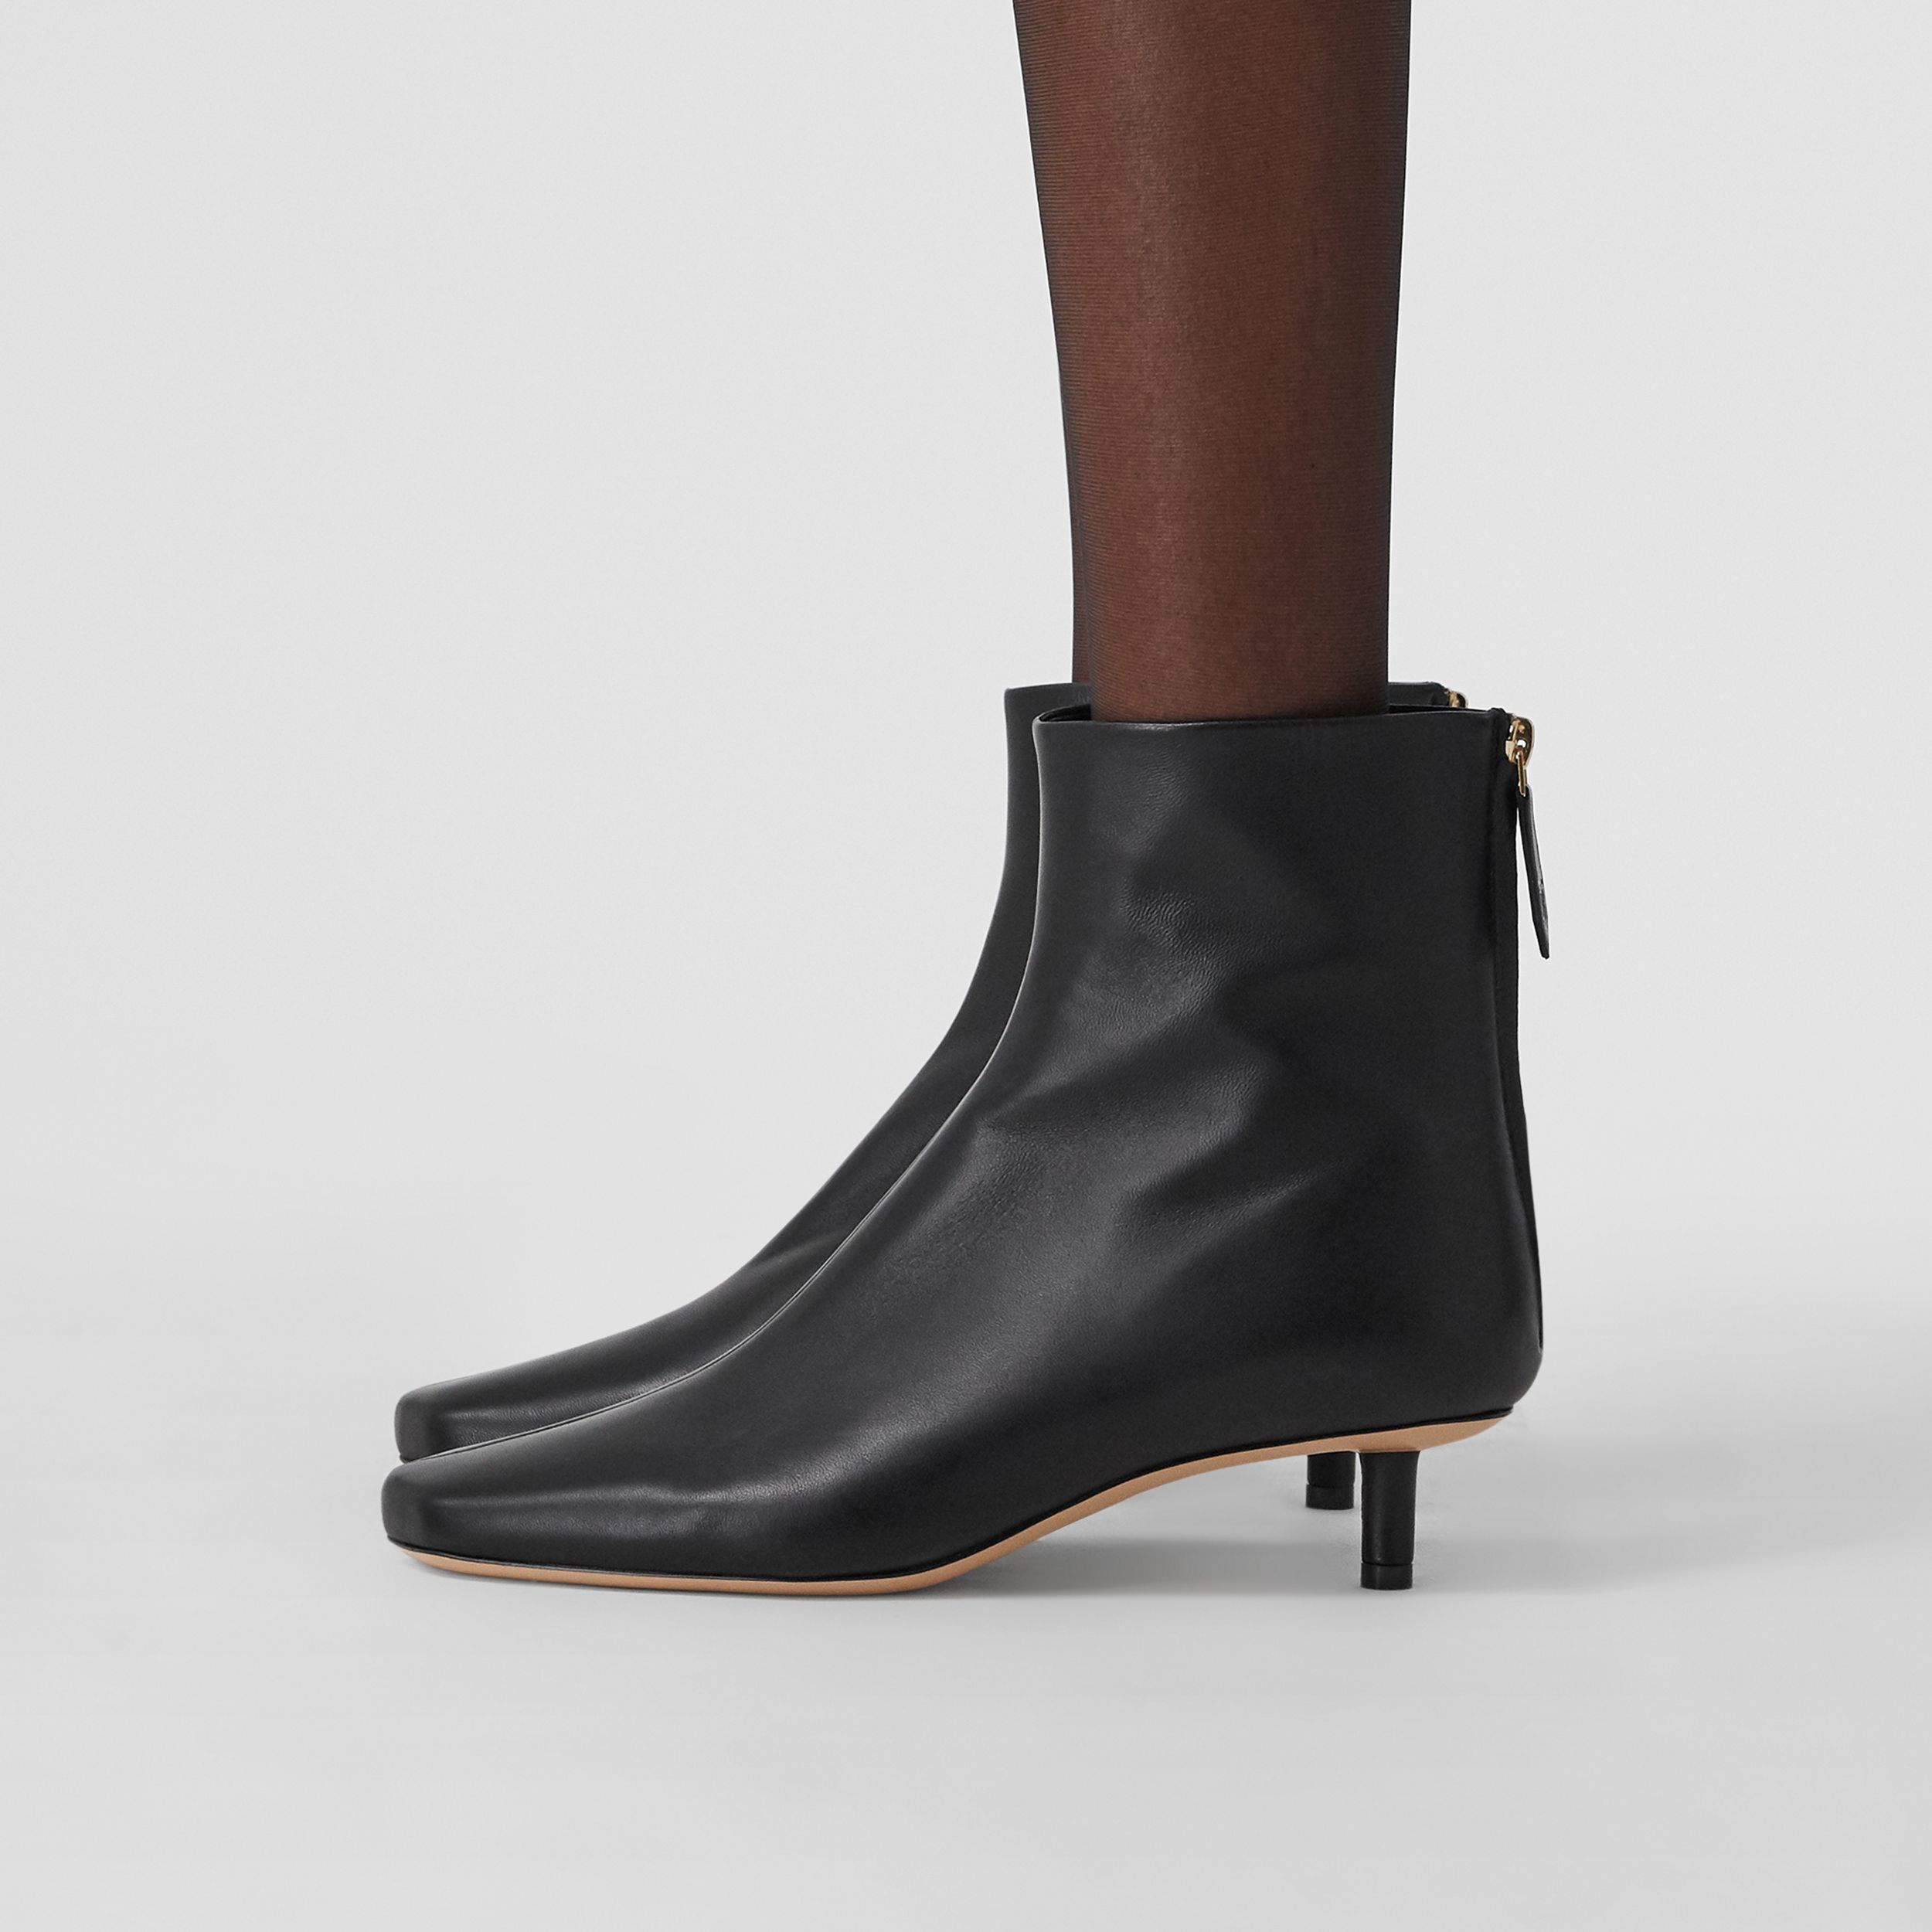 Lambskin Sculptural Kitten-heel Ankle Boots in Black - Women | Burberry Canada - 3